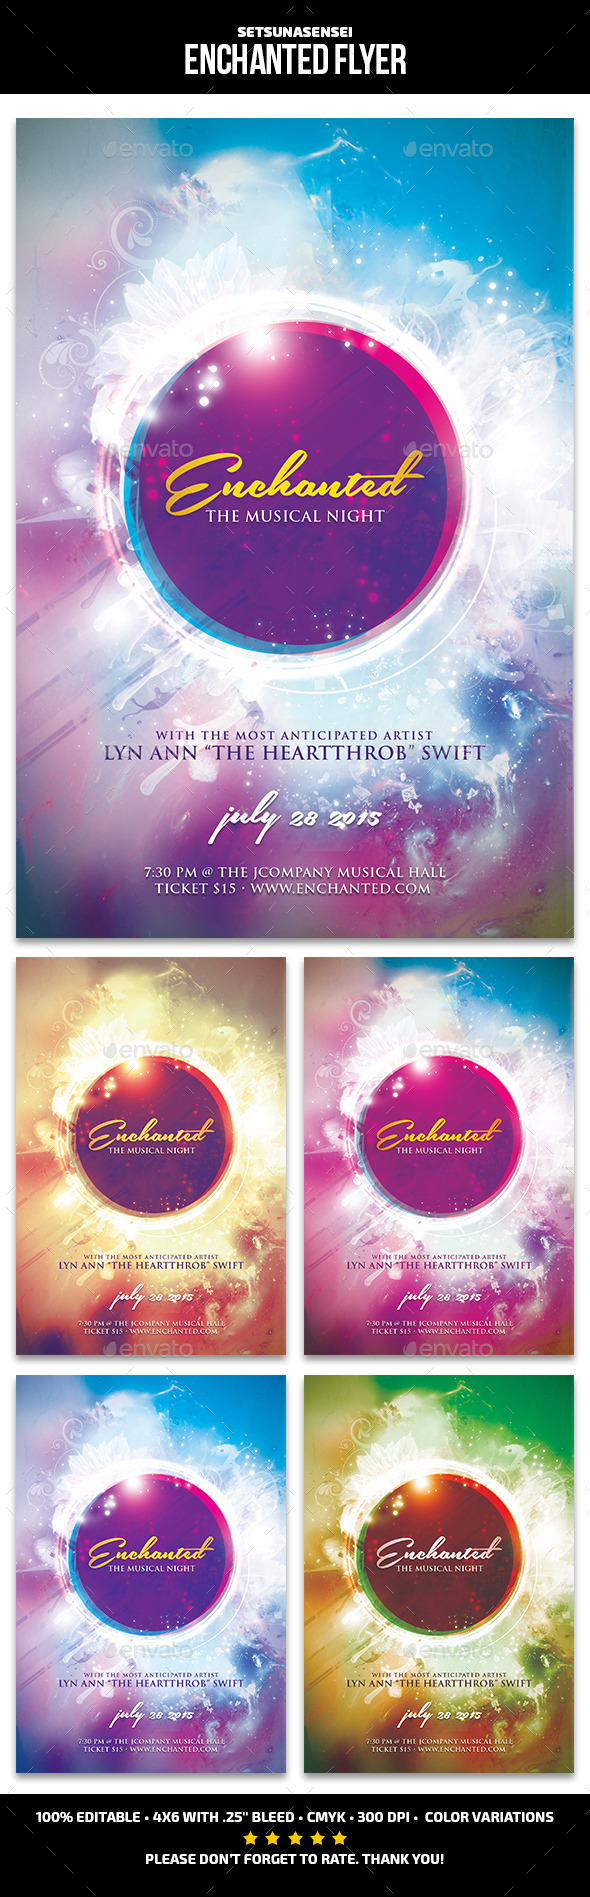 Enchanted Flyer - Concerts Events